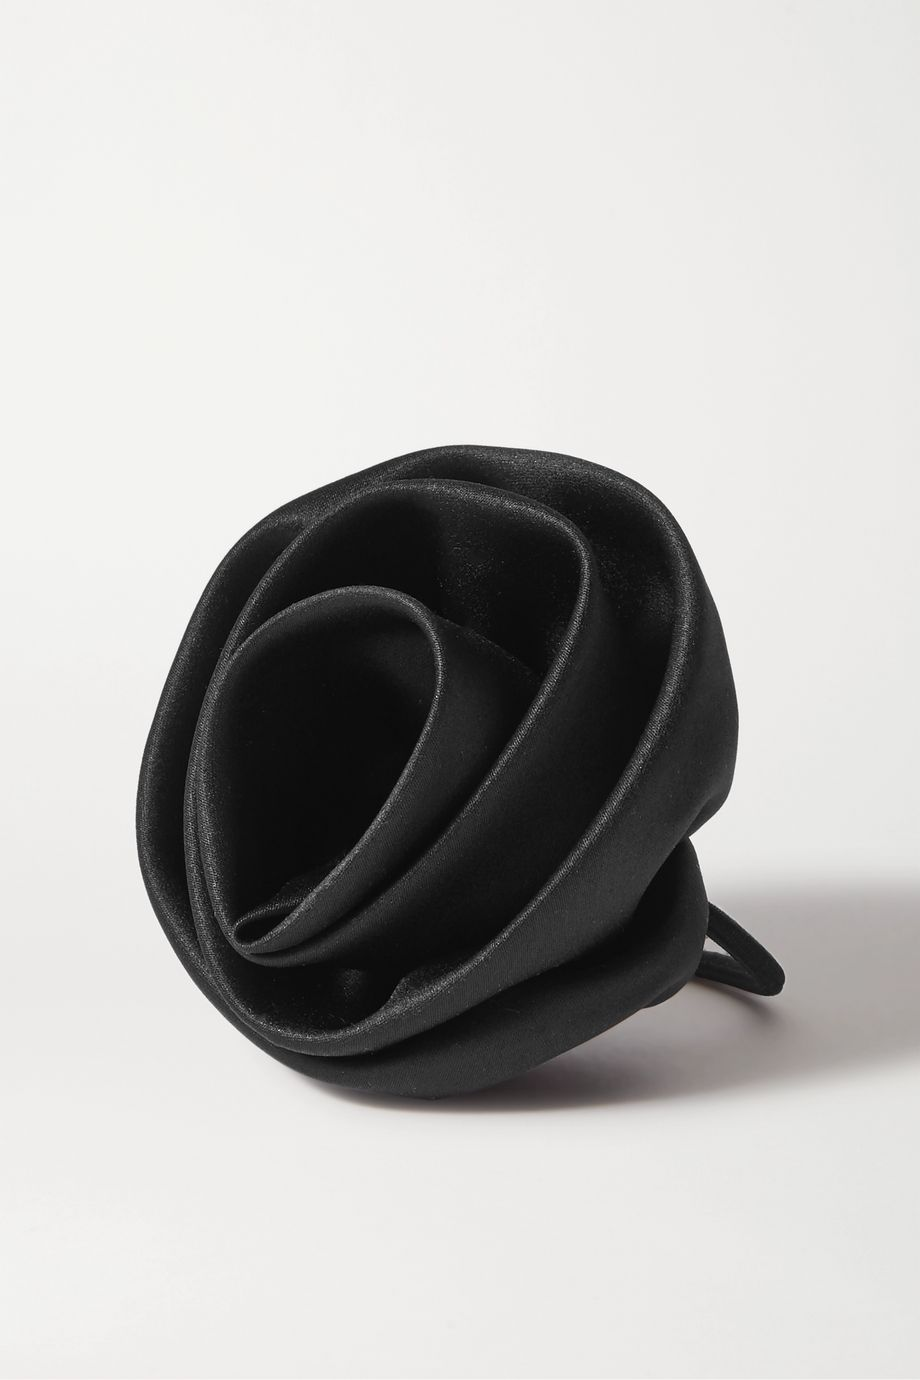 Sophie Buhai + NET SUSTAIN satin hair tie